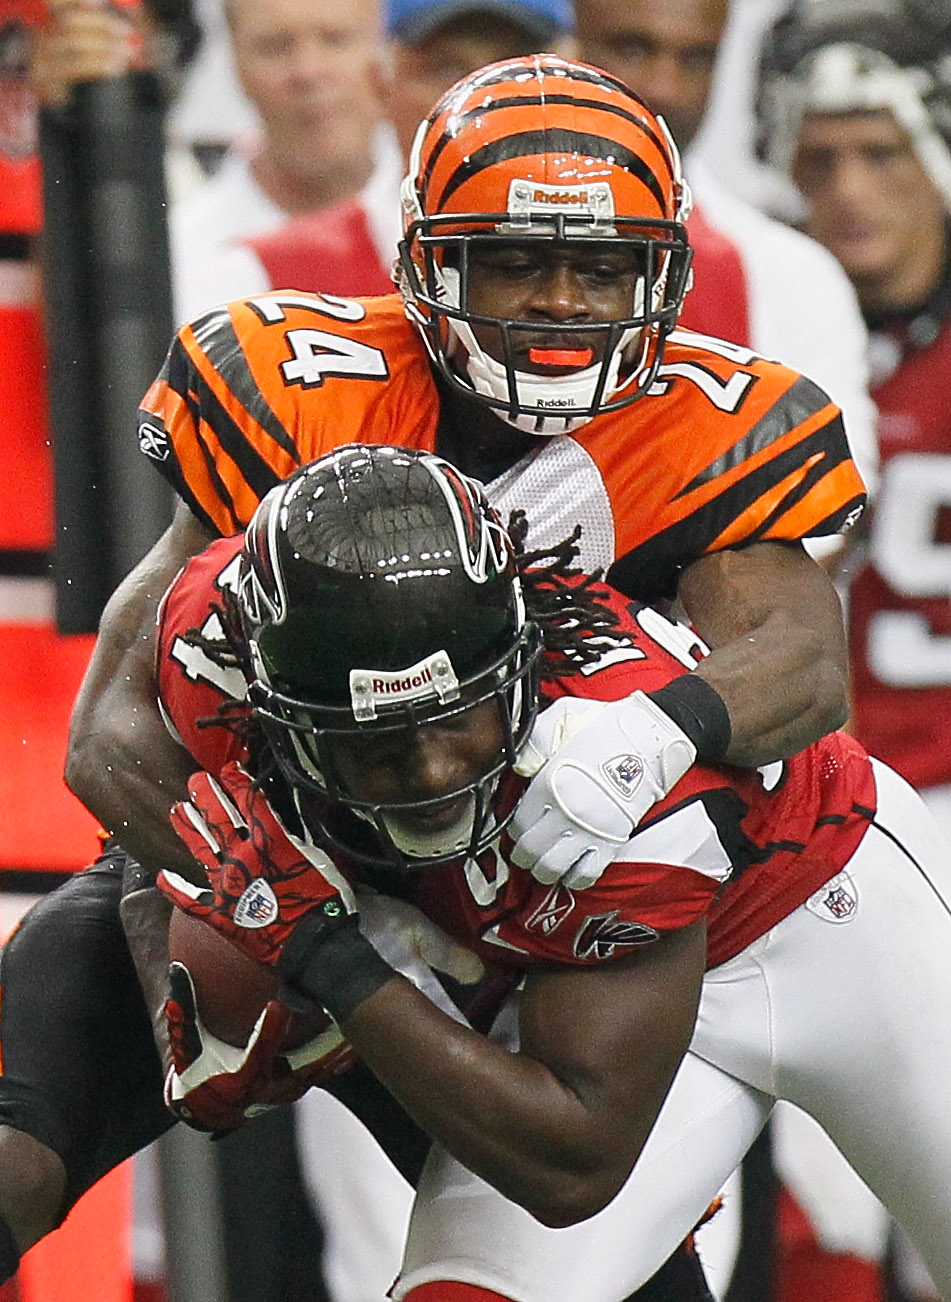 Cornerback Adam Jones' first season with the Bengals was limited due to injury.